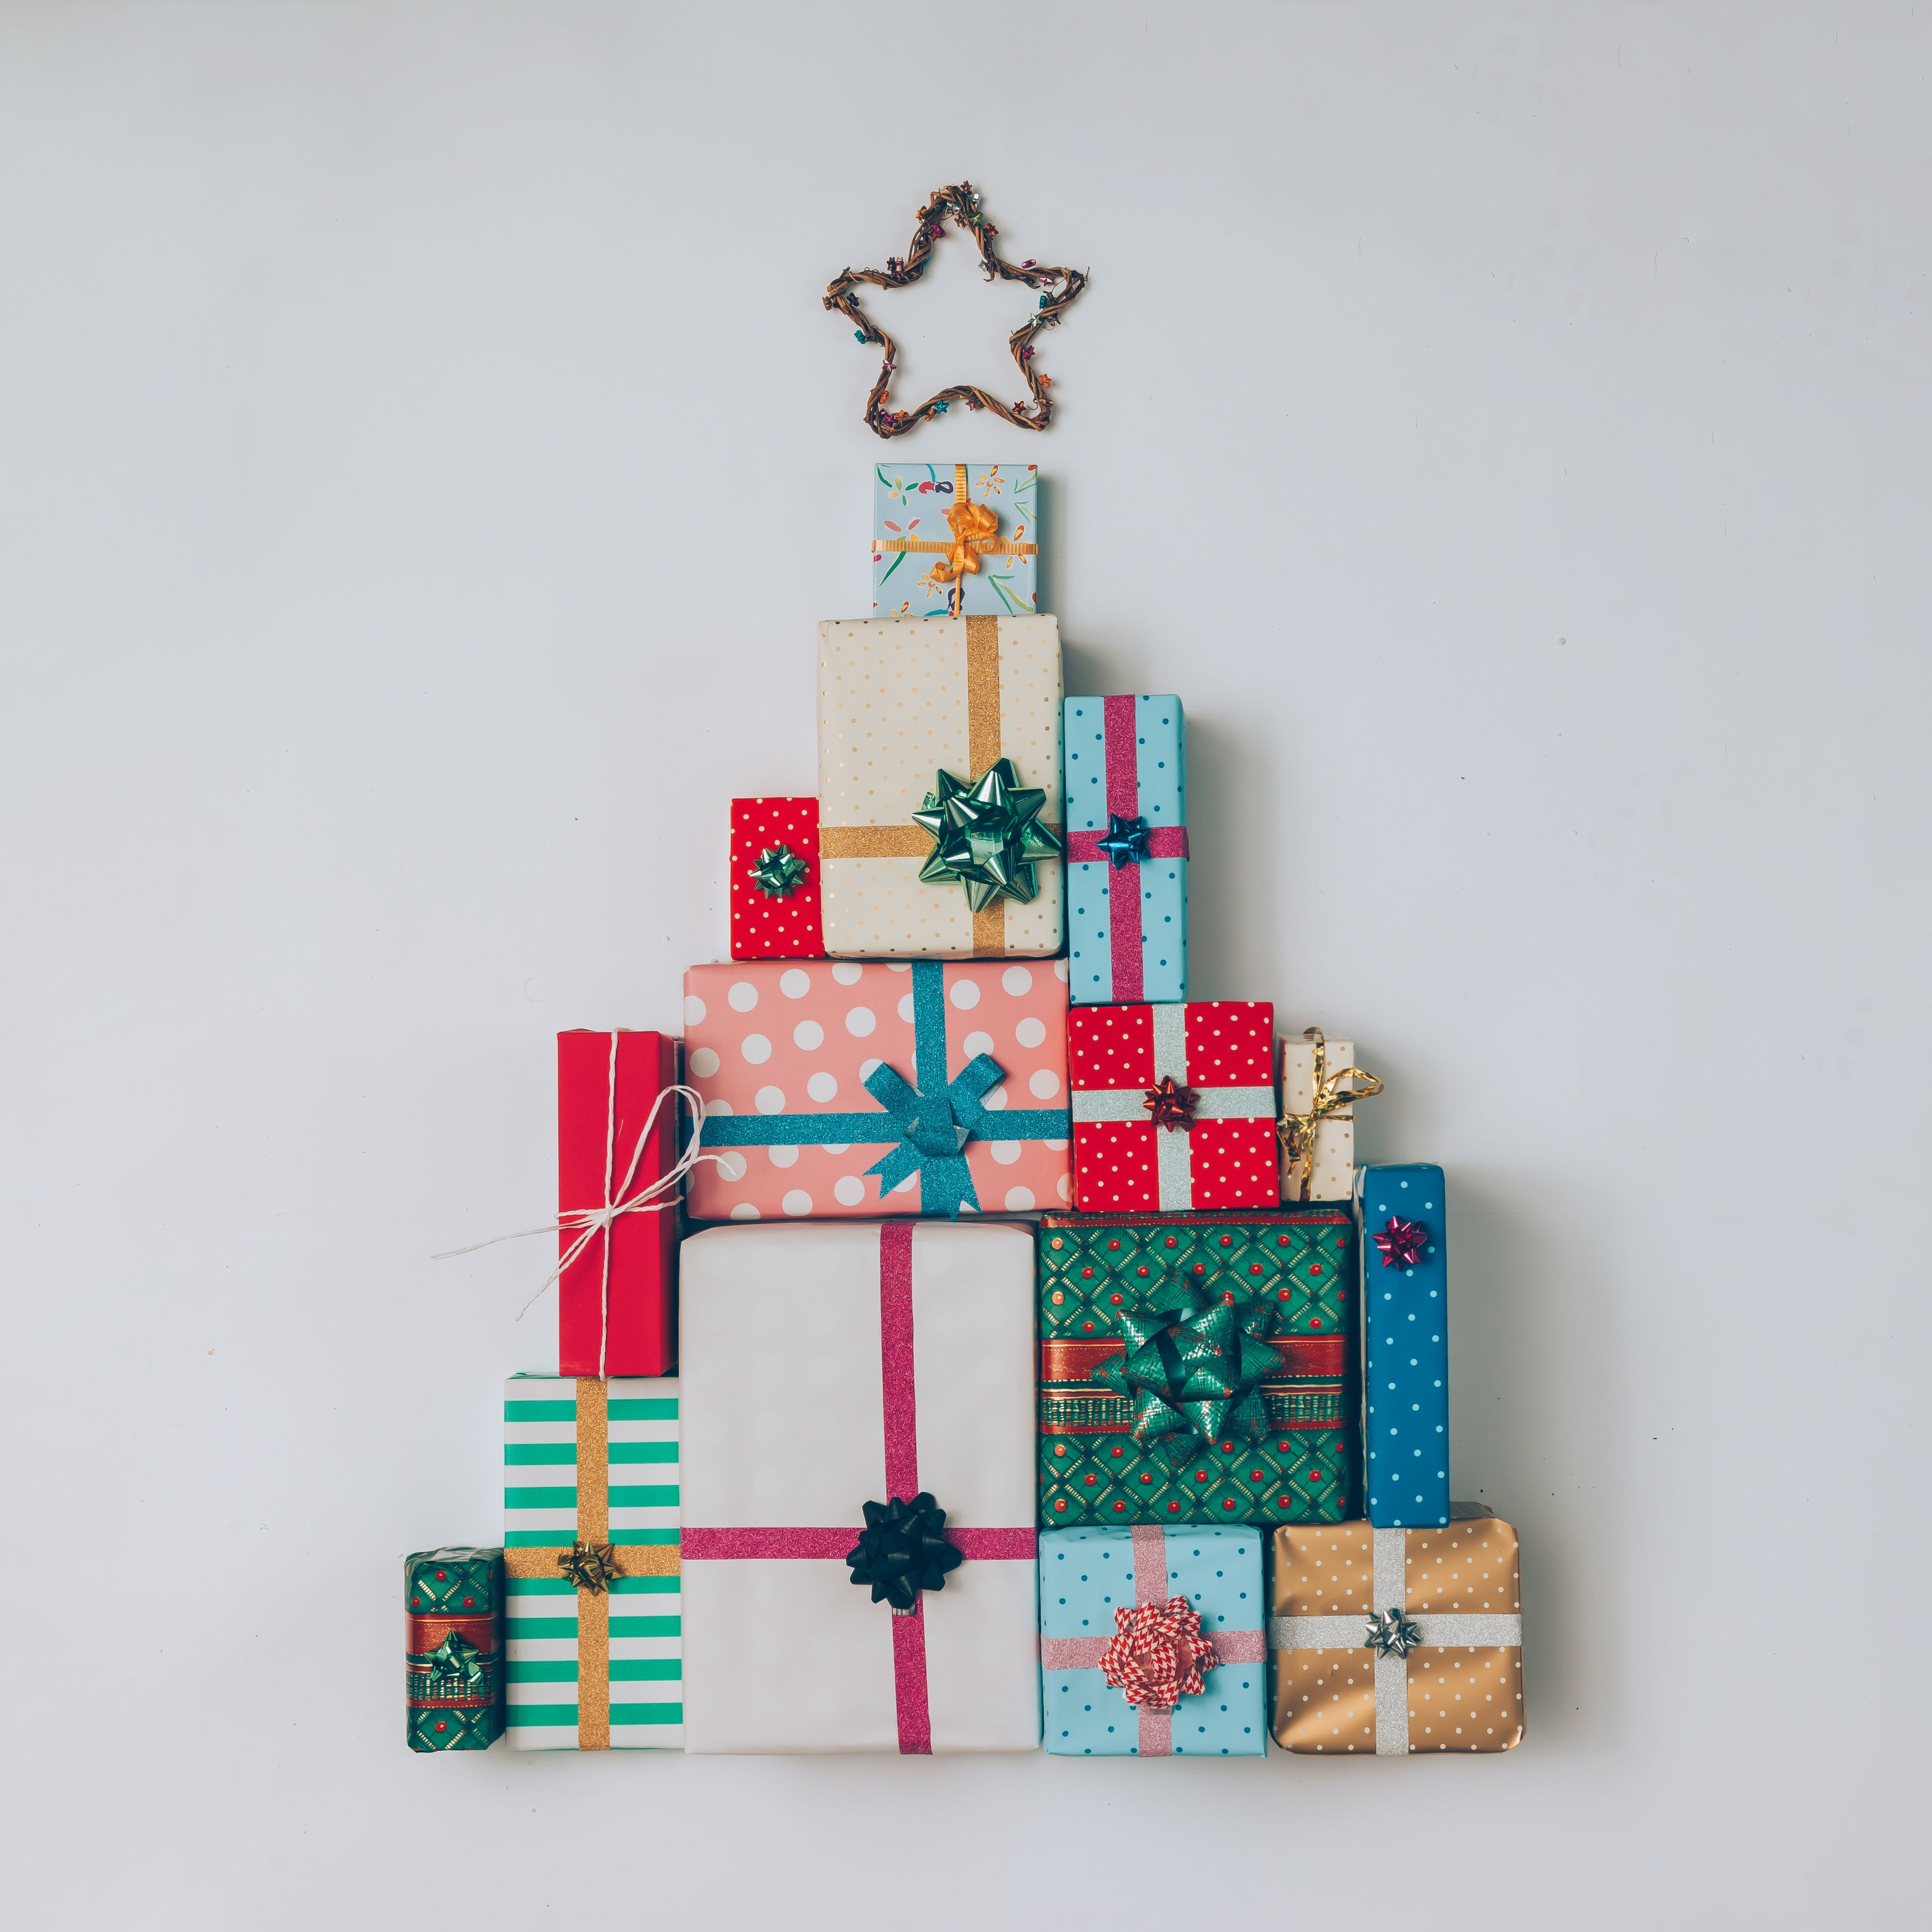 Pinterest Christmas Gift Guide Reveals Best Creative Presents